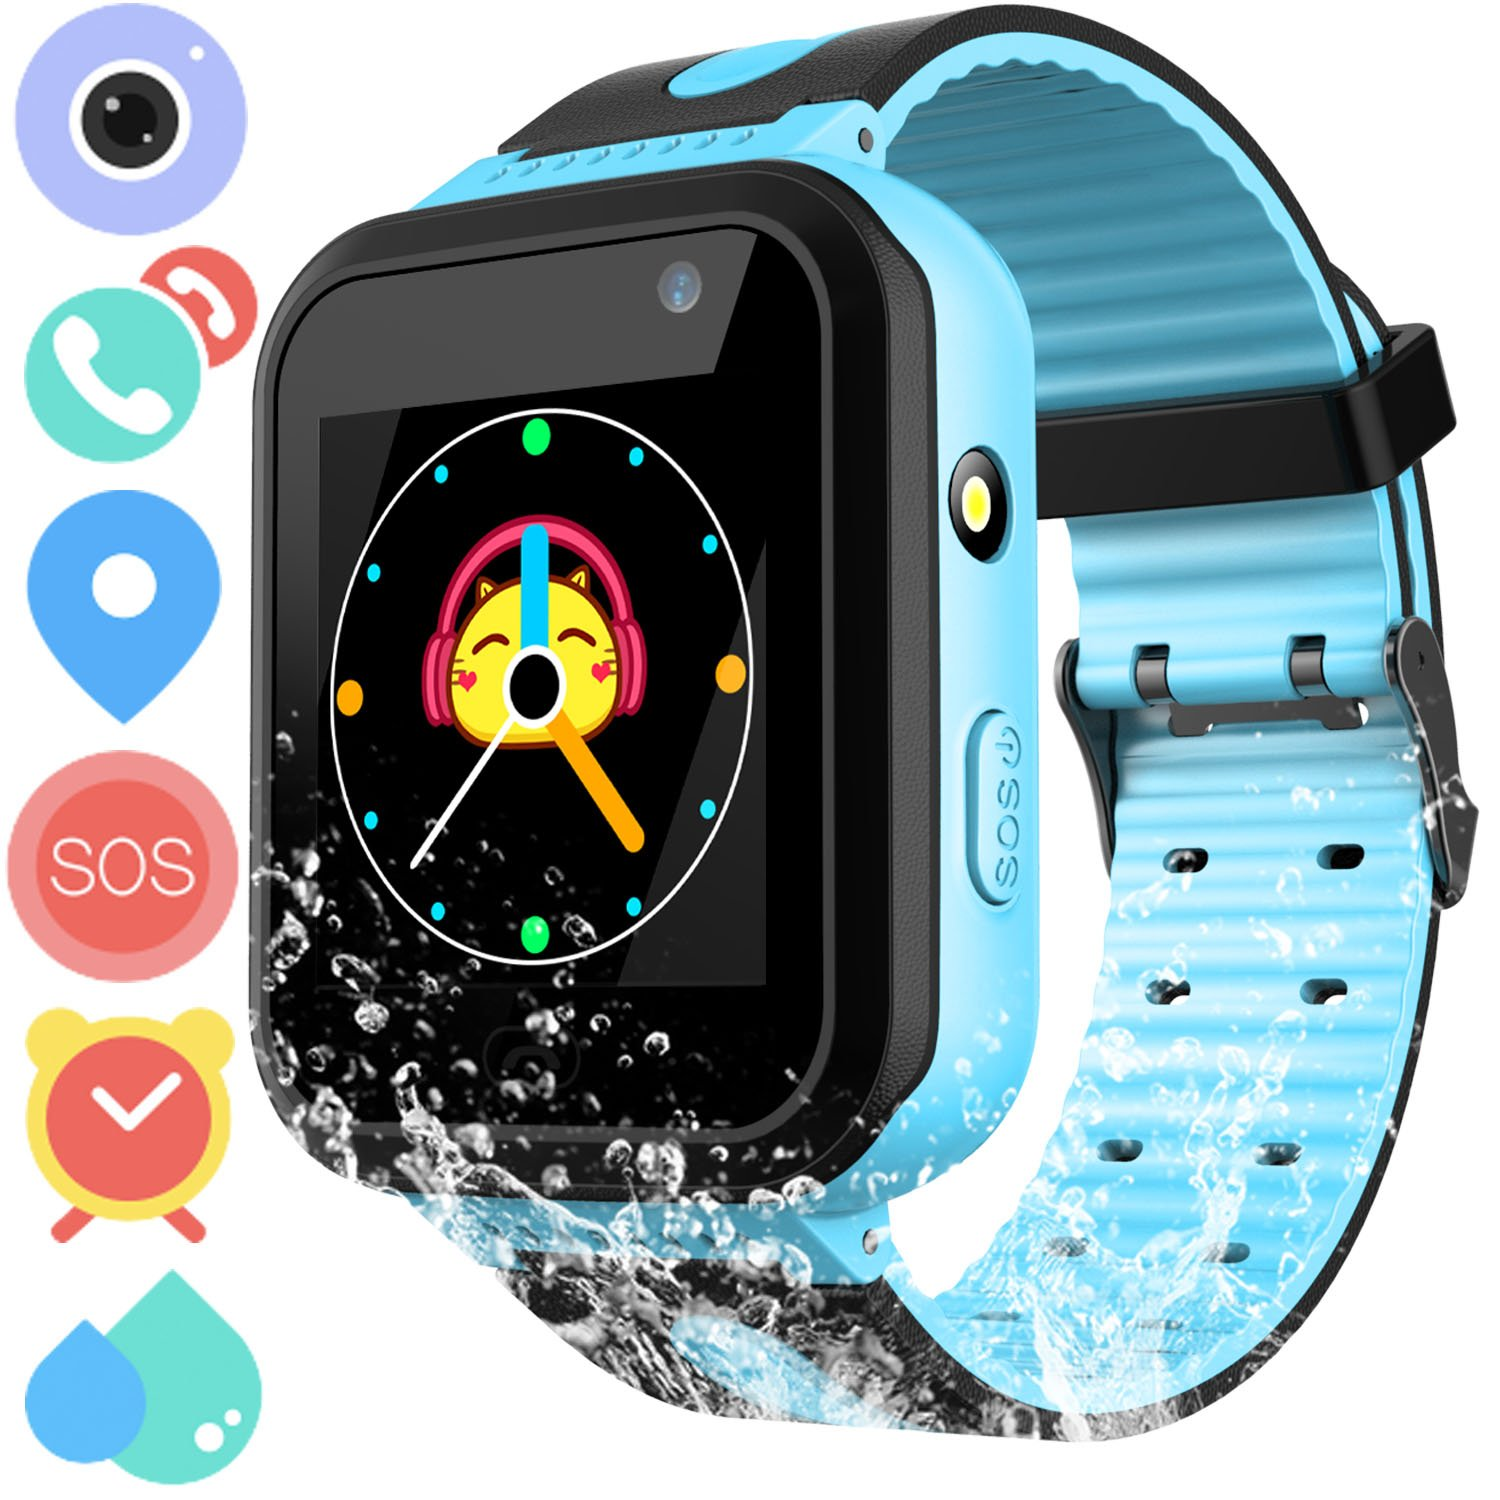 Kids Waterproof Smart Watch for Girls Boys - IP67 Waterproof Children Smartwatch Phone with SIM Slot GPS/LBS Tracker SOS Camera Anti-lost for Summer Outdoor Sports Watch (01 S7 Blue Waterproof)